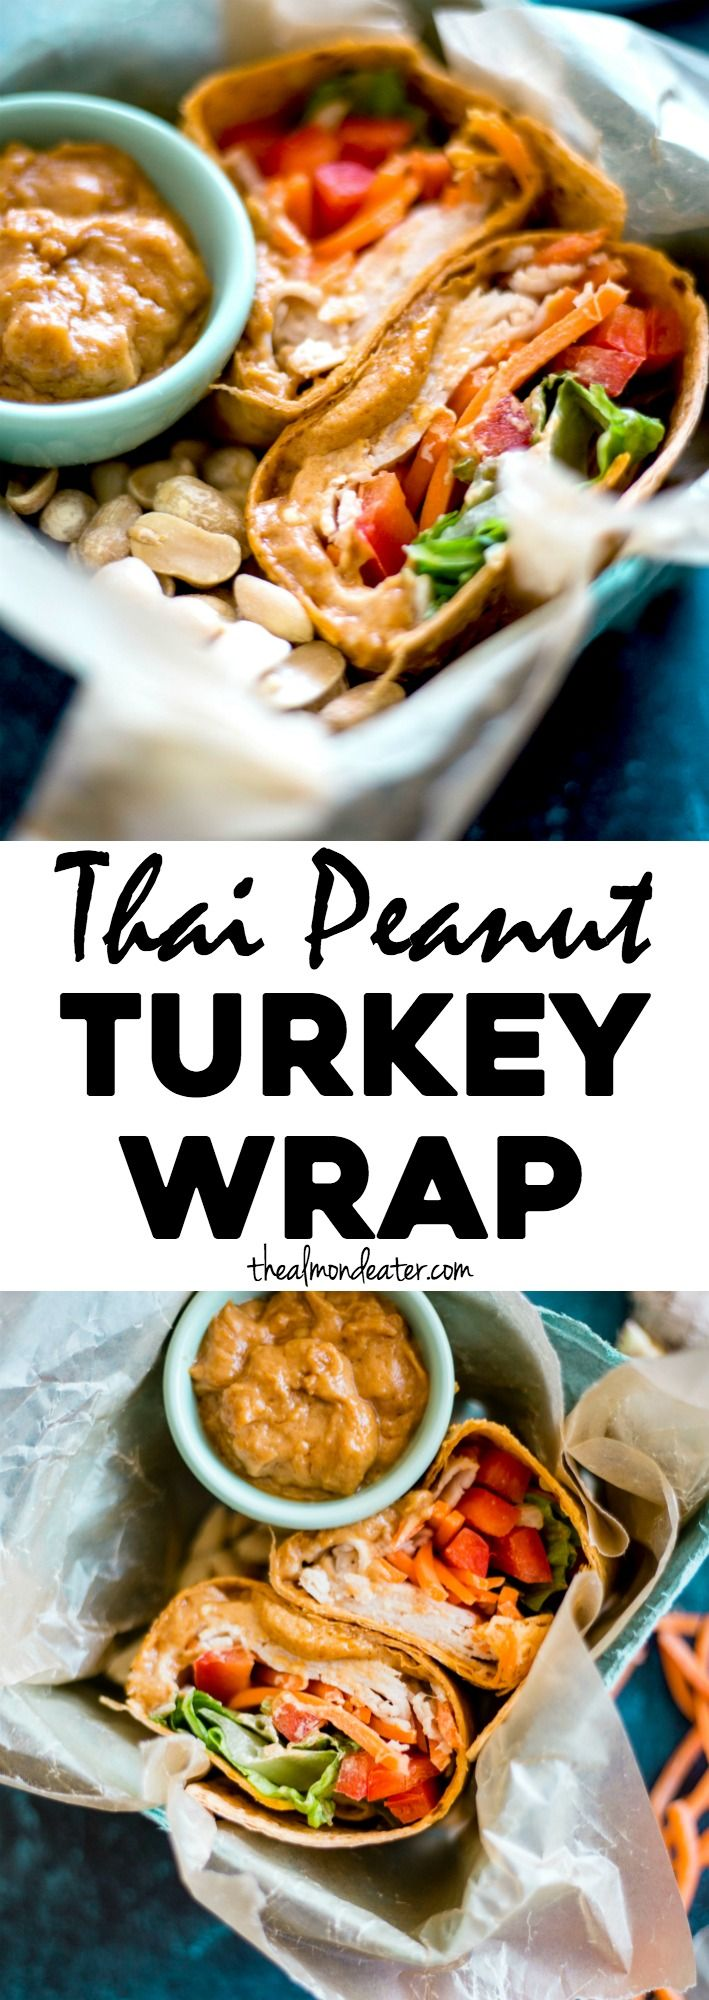 Thai Peanut Turkey Wrap | A simple turkey wrap filled with veggies and a tasty Thai peanut sauce | thealmondeater.com